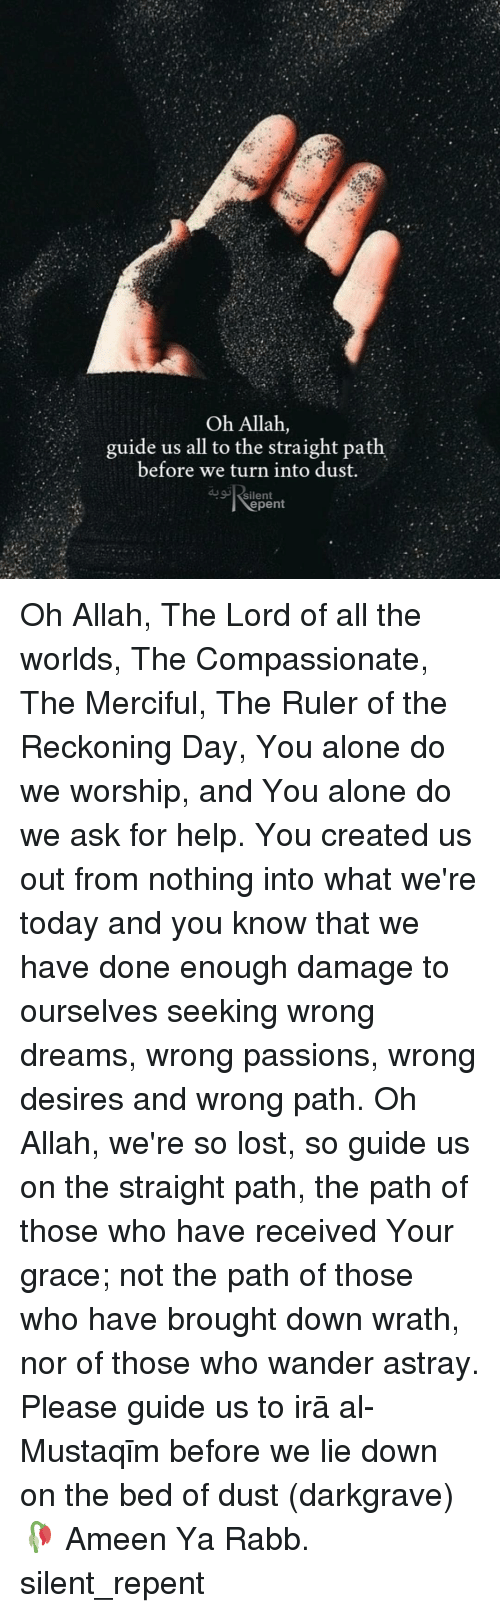 Being Alone, Memes, and Lost: Oh Allah,  guide us all to the straight path  before we turn into dust.  silent  epent Oh Allah, The Lord of all the worlds, The Compassionate, The Merciful, The Ruler of the Reckoning Day, You alone do we worship, and You alone do we ask for help. You created us out from nothing into what we're today and you know that we have done enough damage to ourselves seeking wrong dreams, wrong passions, wrong desires and wrong path. Oh Allah, we're so lost, so guide us on the straight path, the path of those who have received Your grace; not the path of those who have brought down wrath, nor of those who wander astray. Please guide us to Ṣirāṭ al-Mustaqīm before we lie down on the bed of dust (darkgrave)🥀 Ameen Ya Rabb. silent_repent